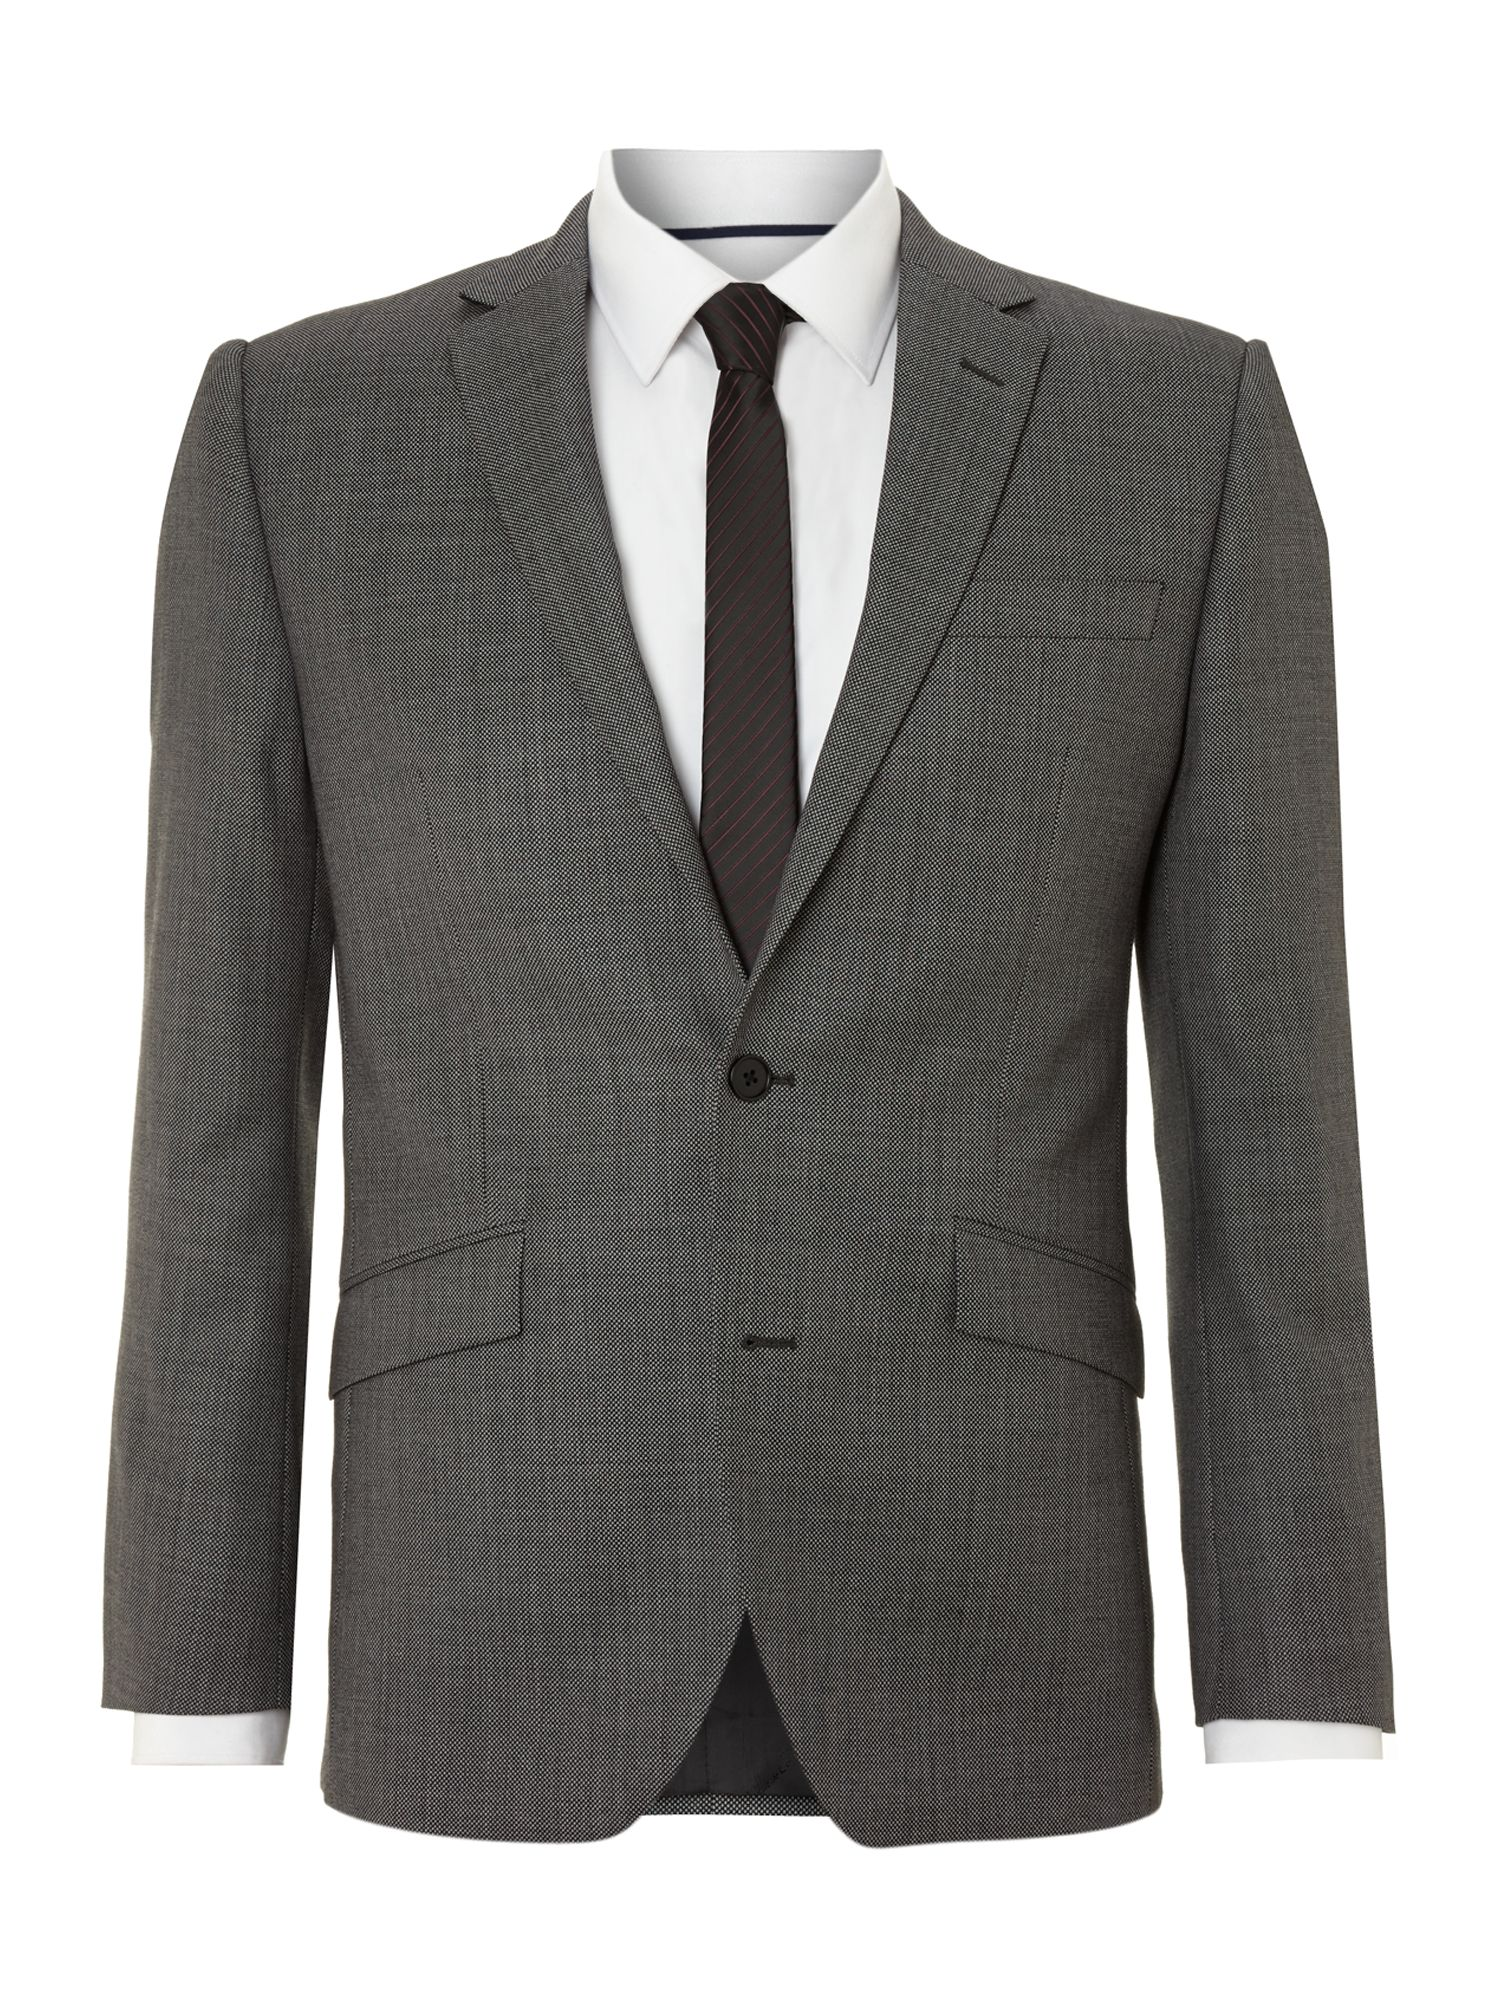 Waverley suit